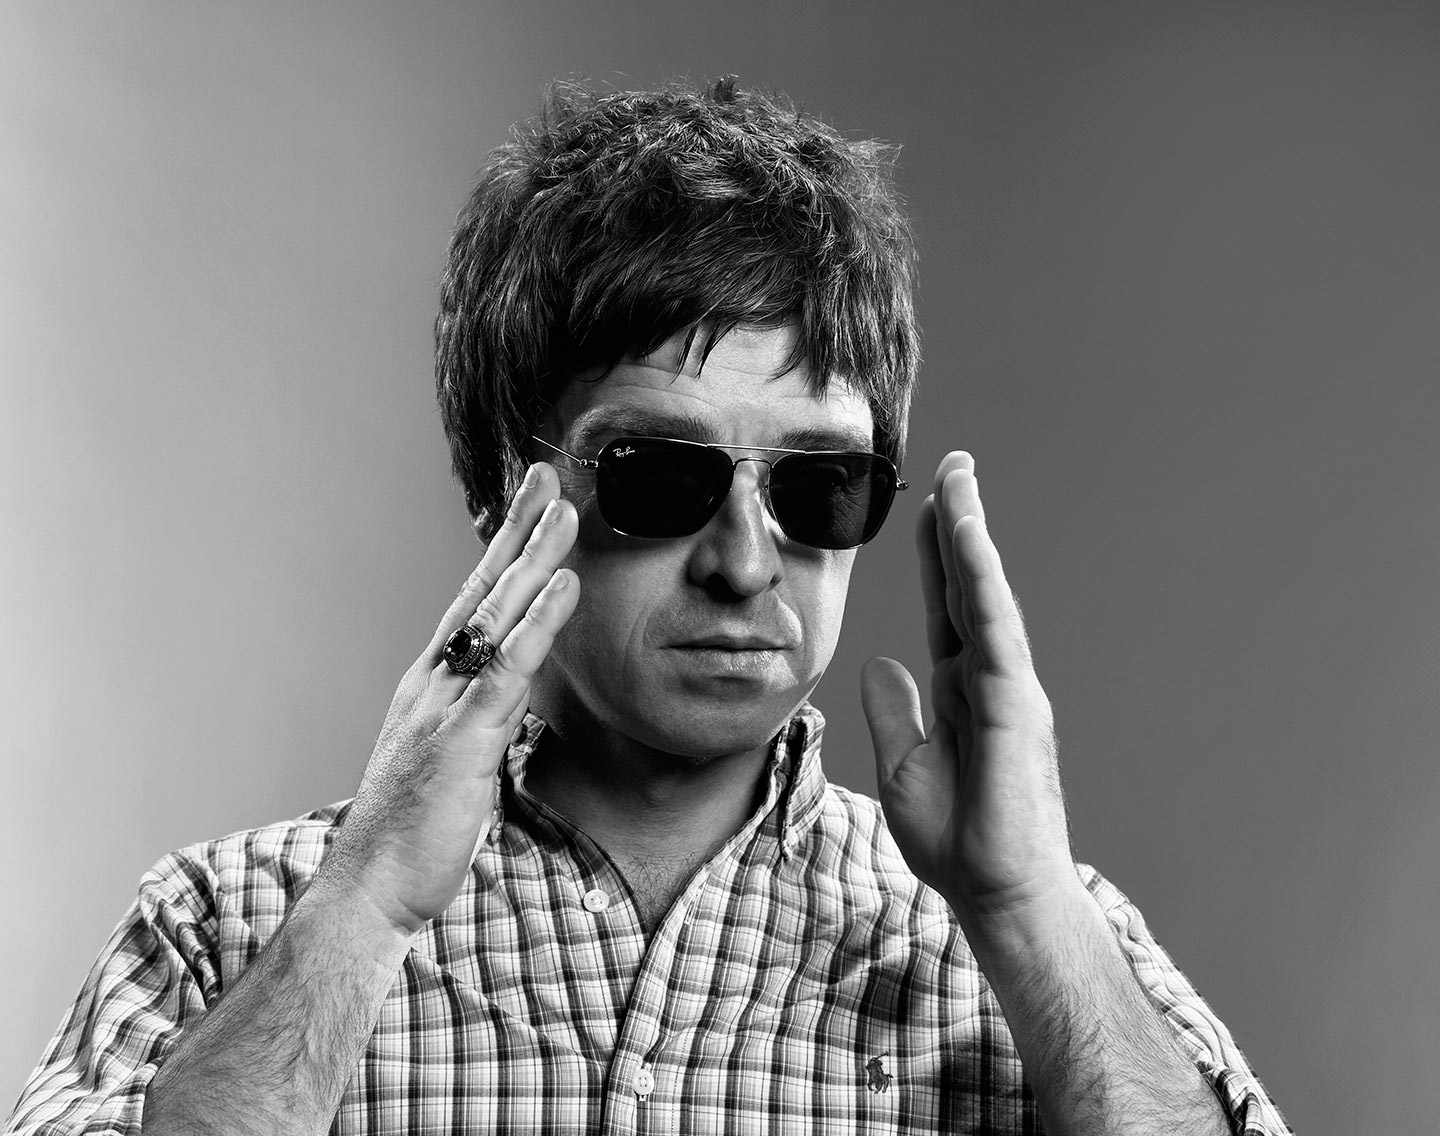 Noel Gallagher's quote #2